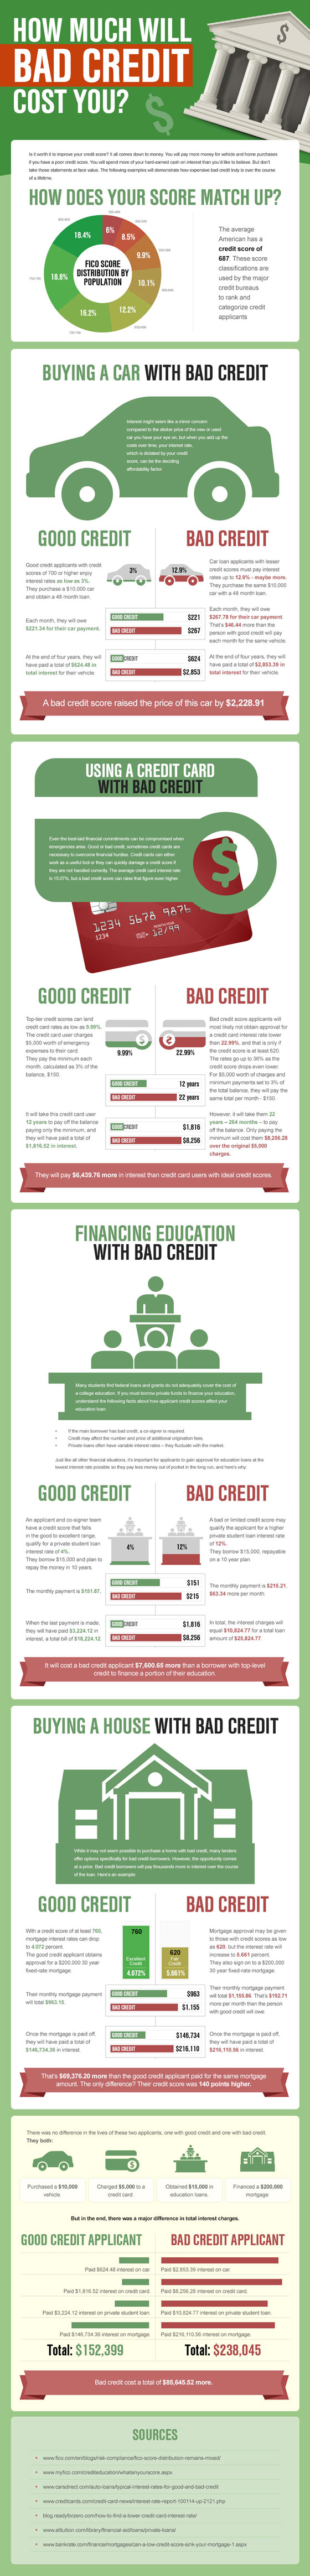 bad-credit-infographic